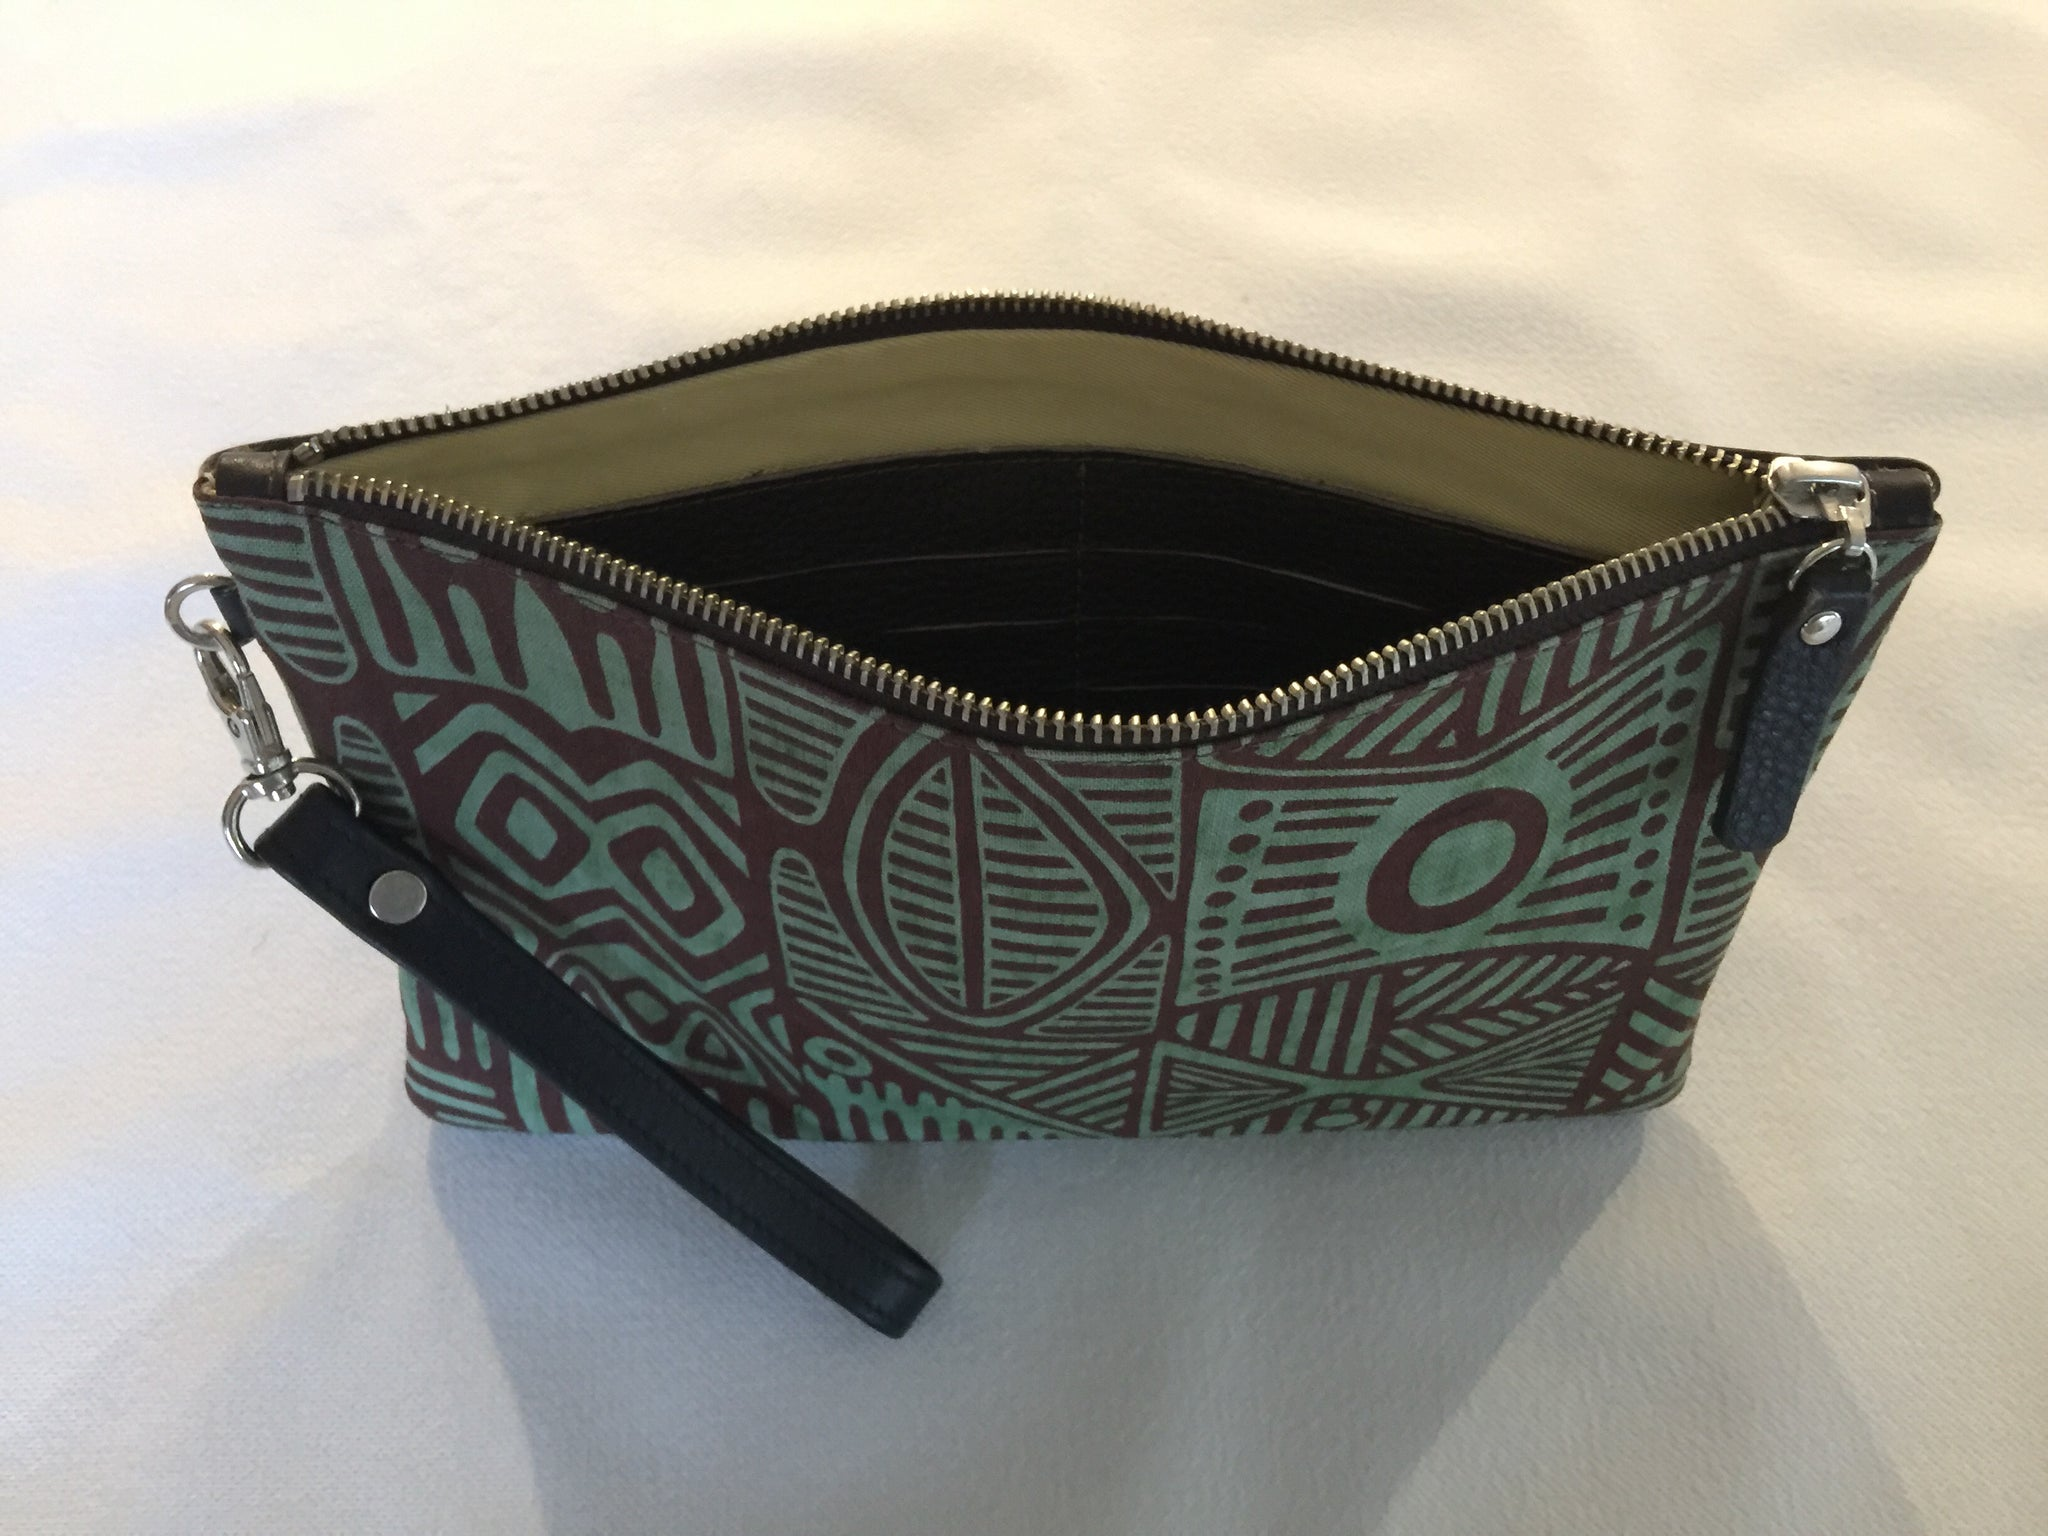 Zara Purse featuring Stone Axe by Aboriginal artist Danny Munkara, Tiwi Designs ( Sample stock)